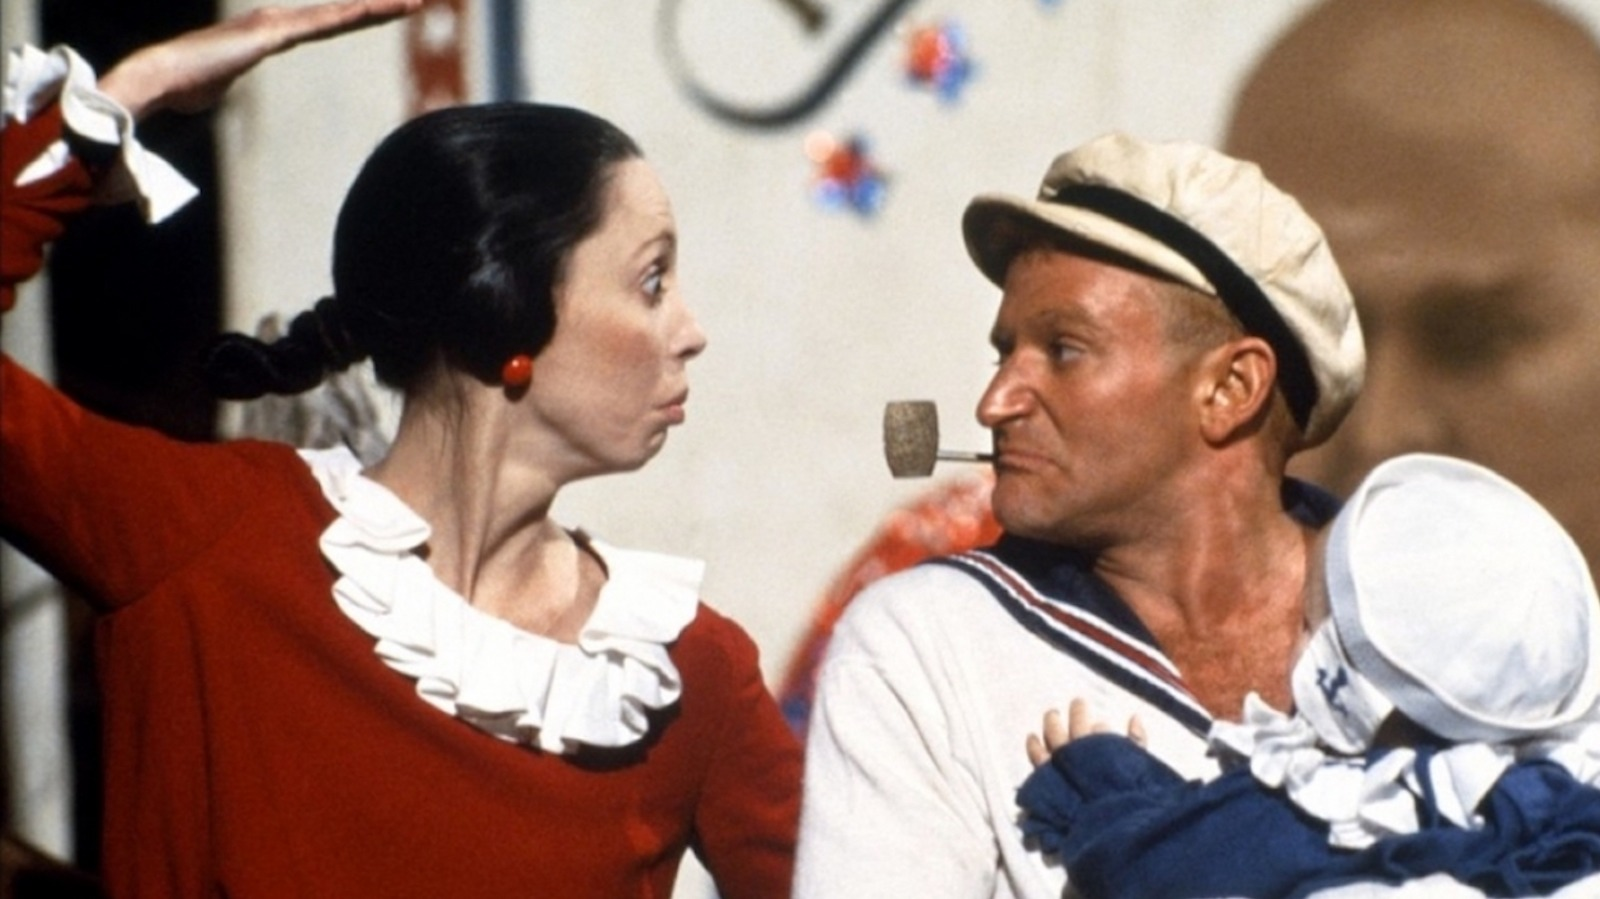 The Theme Park That Brings Popeye The Sailor Man To Life